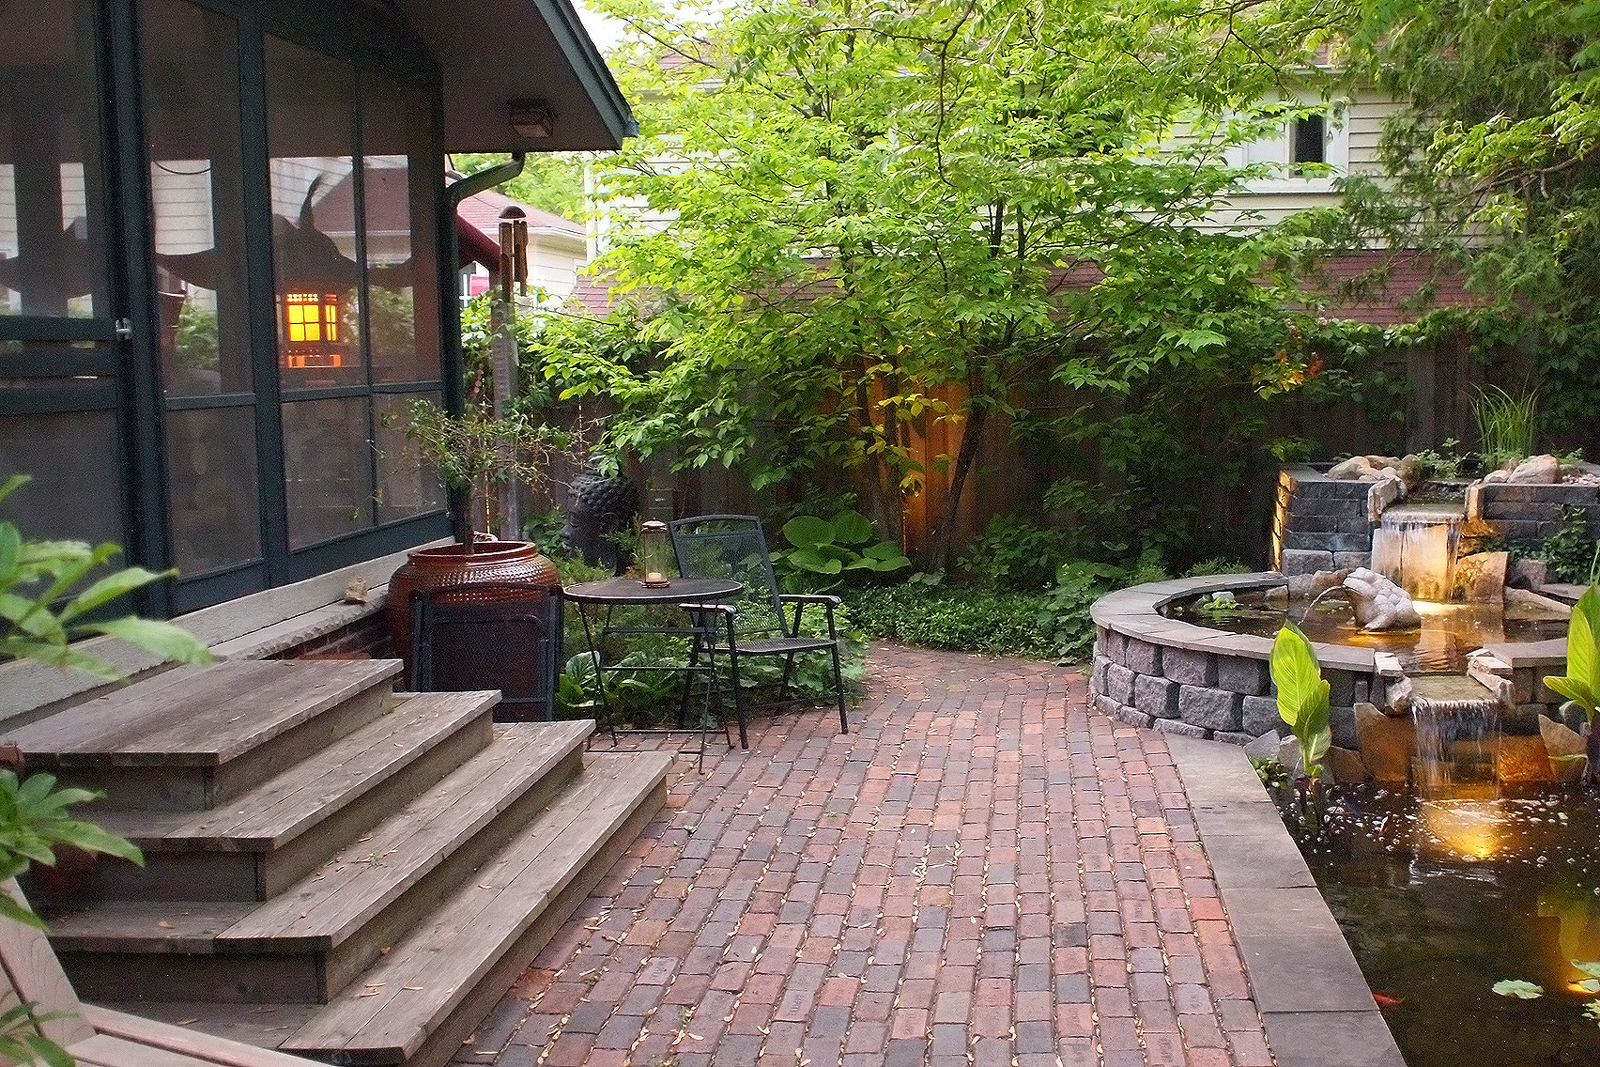 Paver Patio Ideas | Stone Patio Ideas | HouseLogic on Brick Paver Patio Designs id=71448